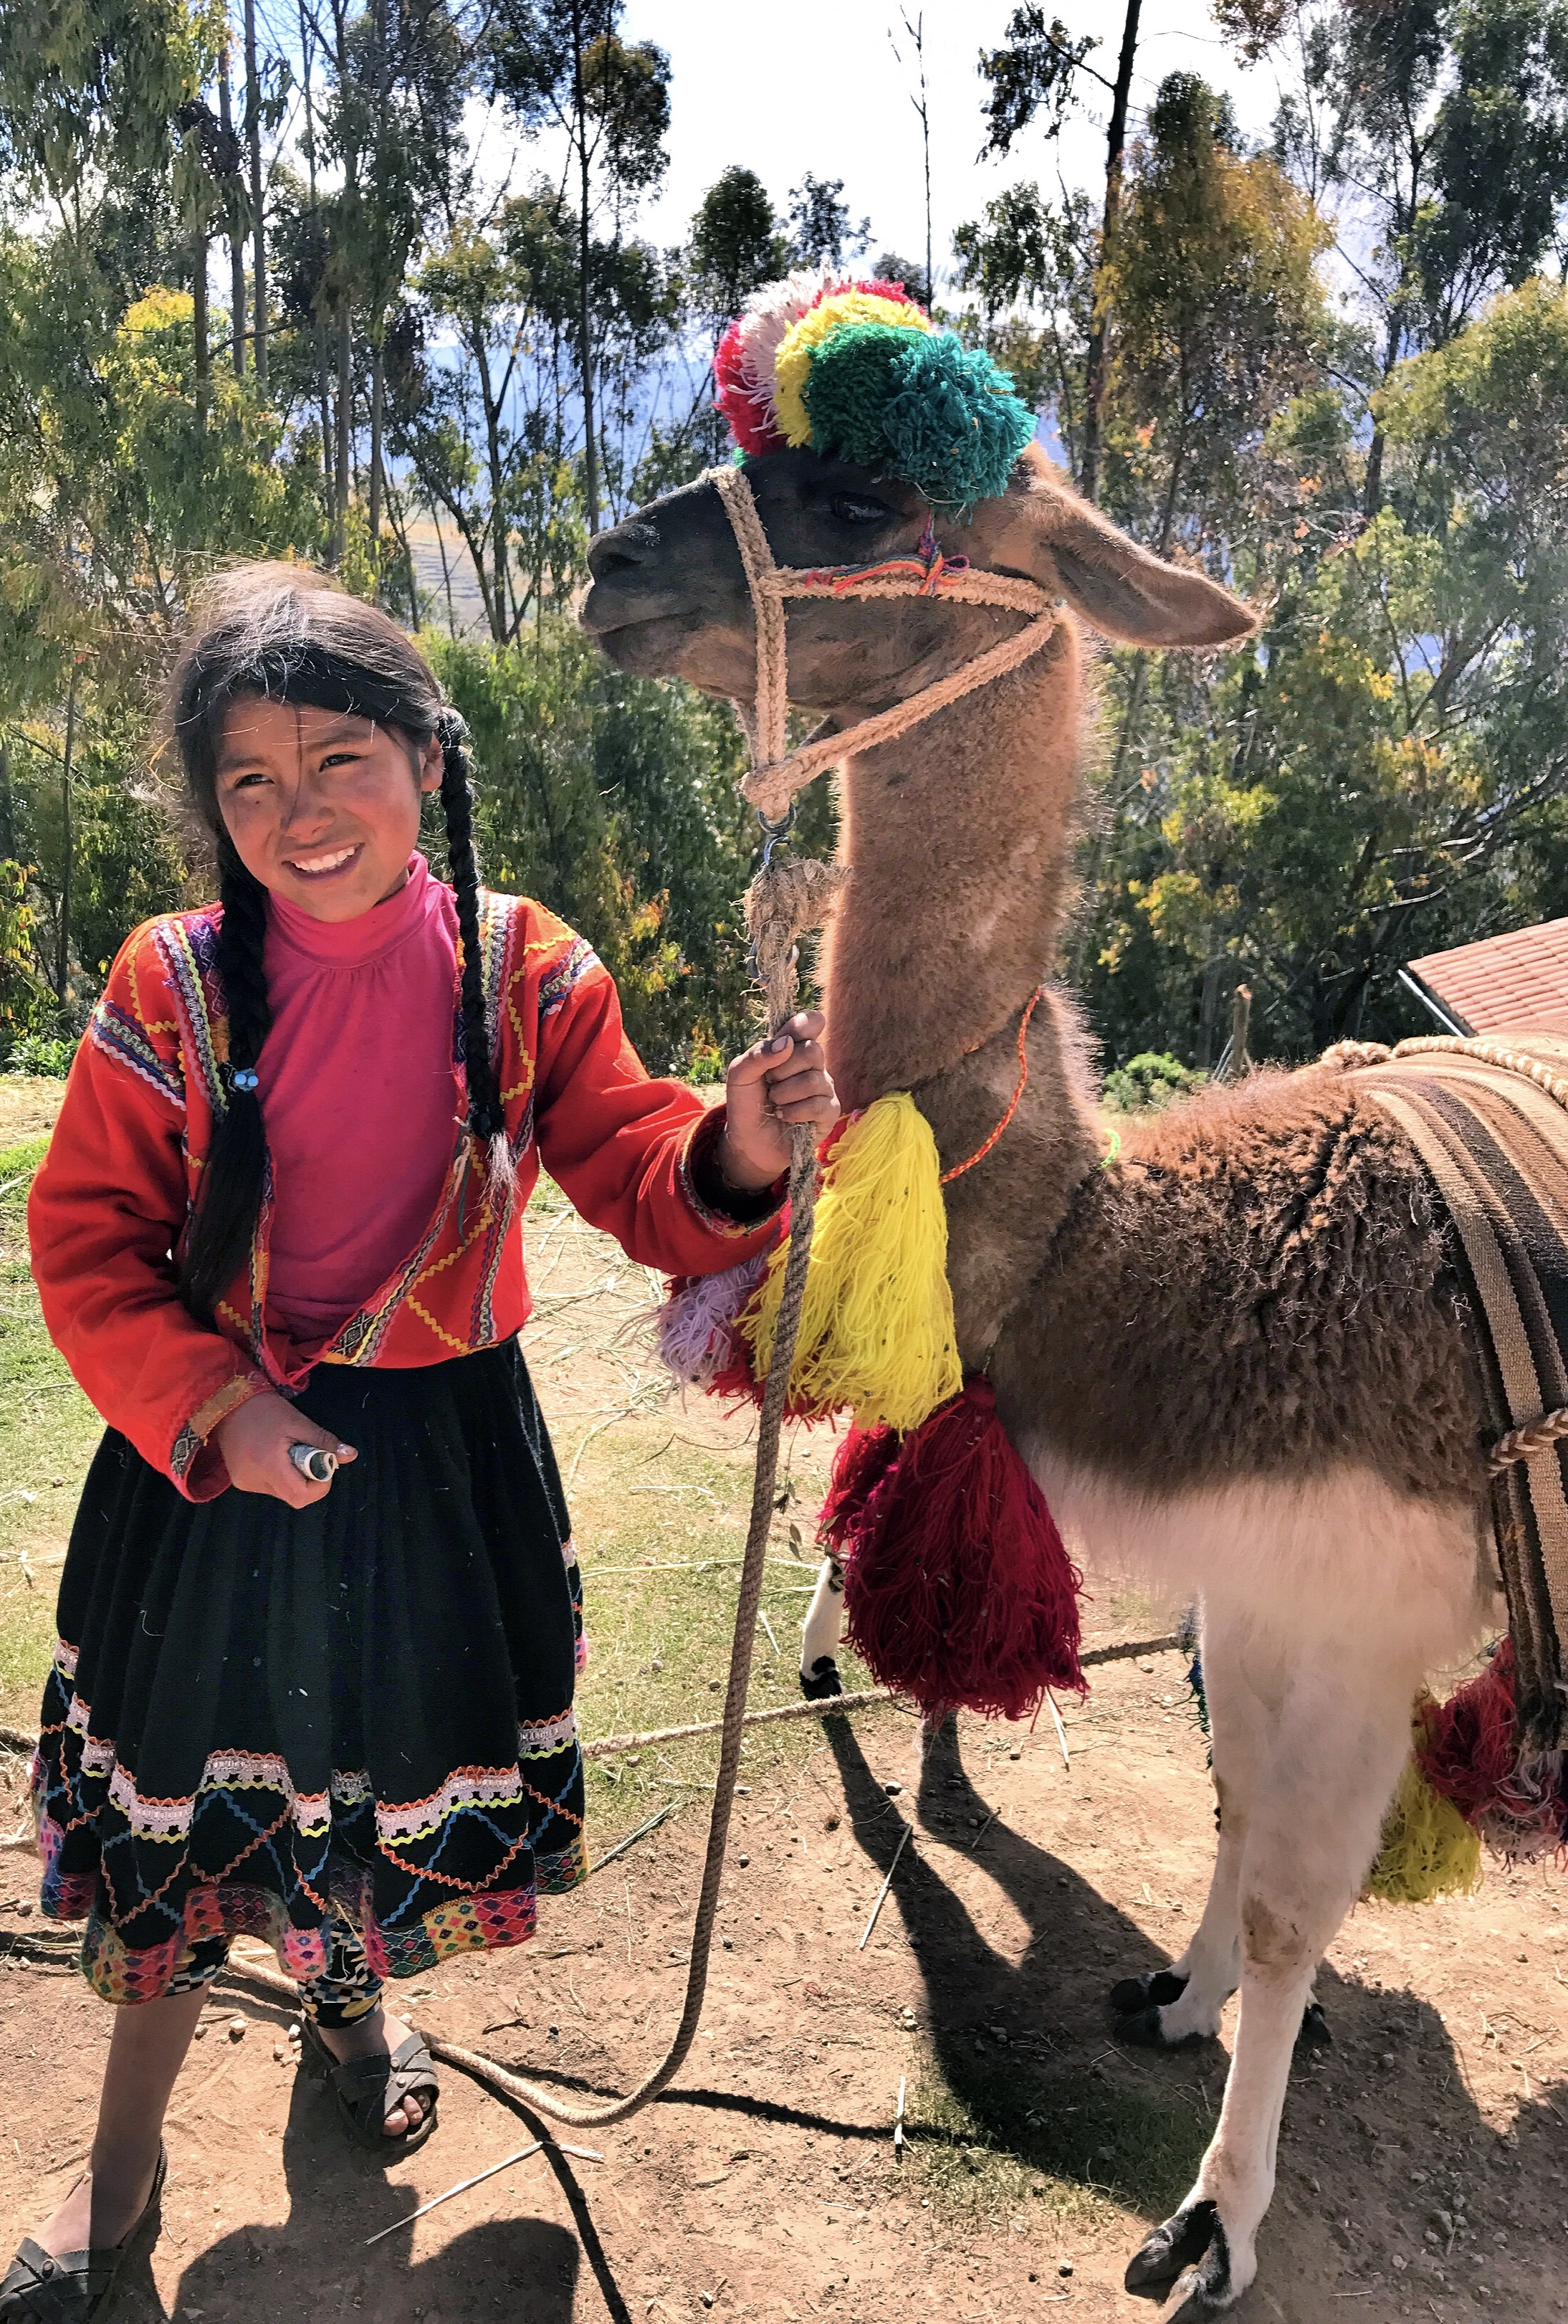 machu-picchu-beautiful-peruvian-girl-authentic-costume-traditional-colorful-llamas